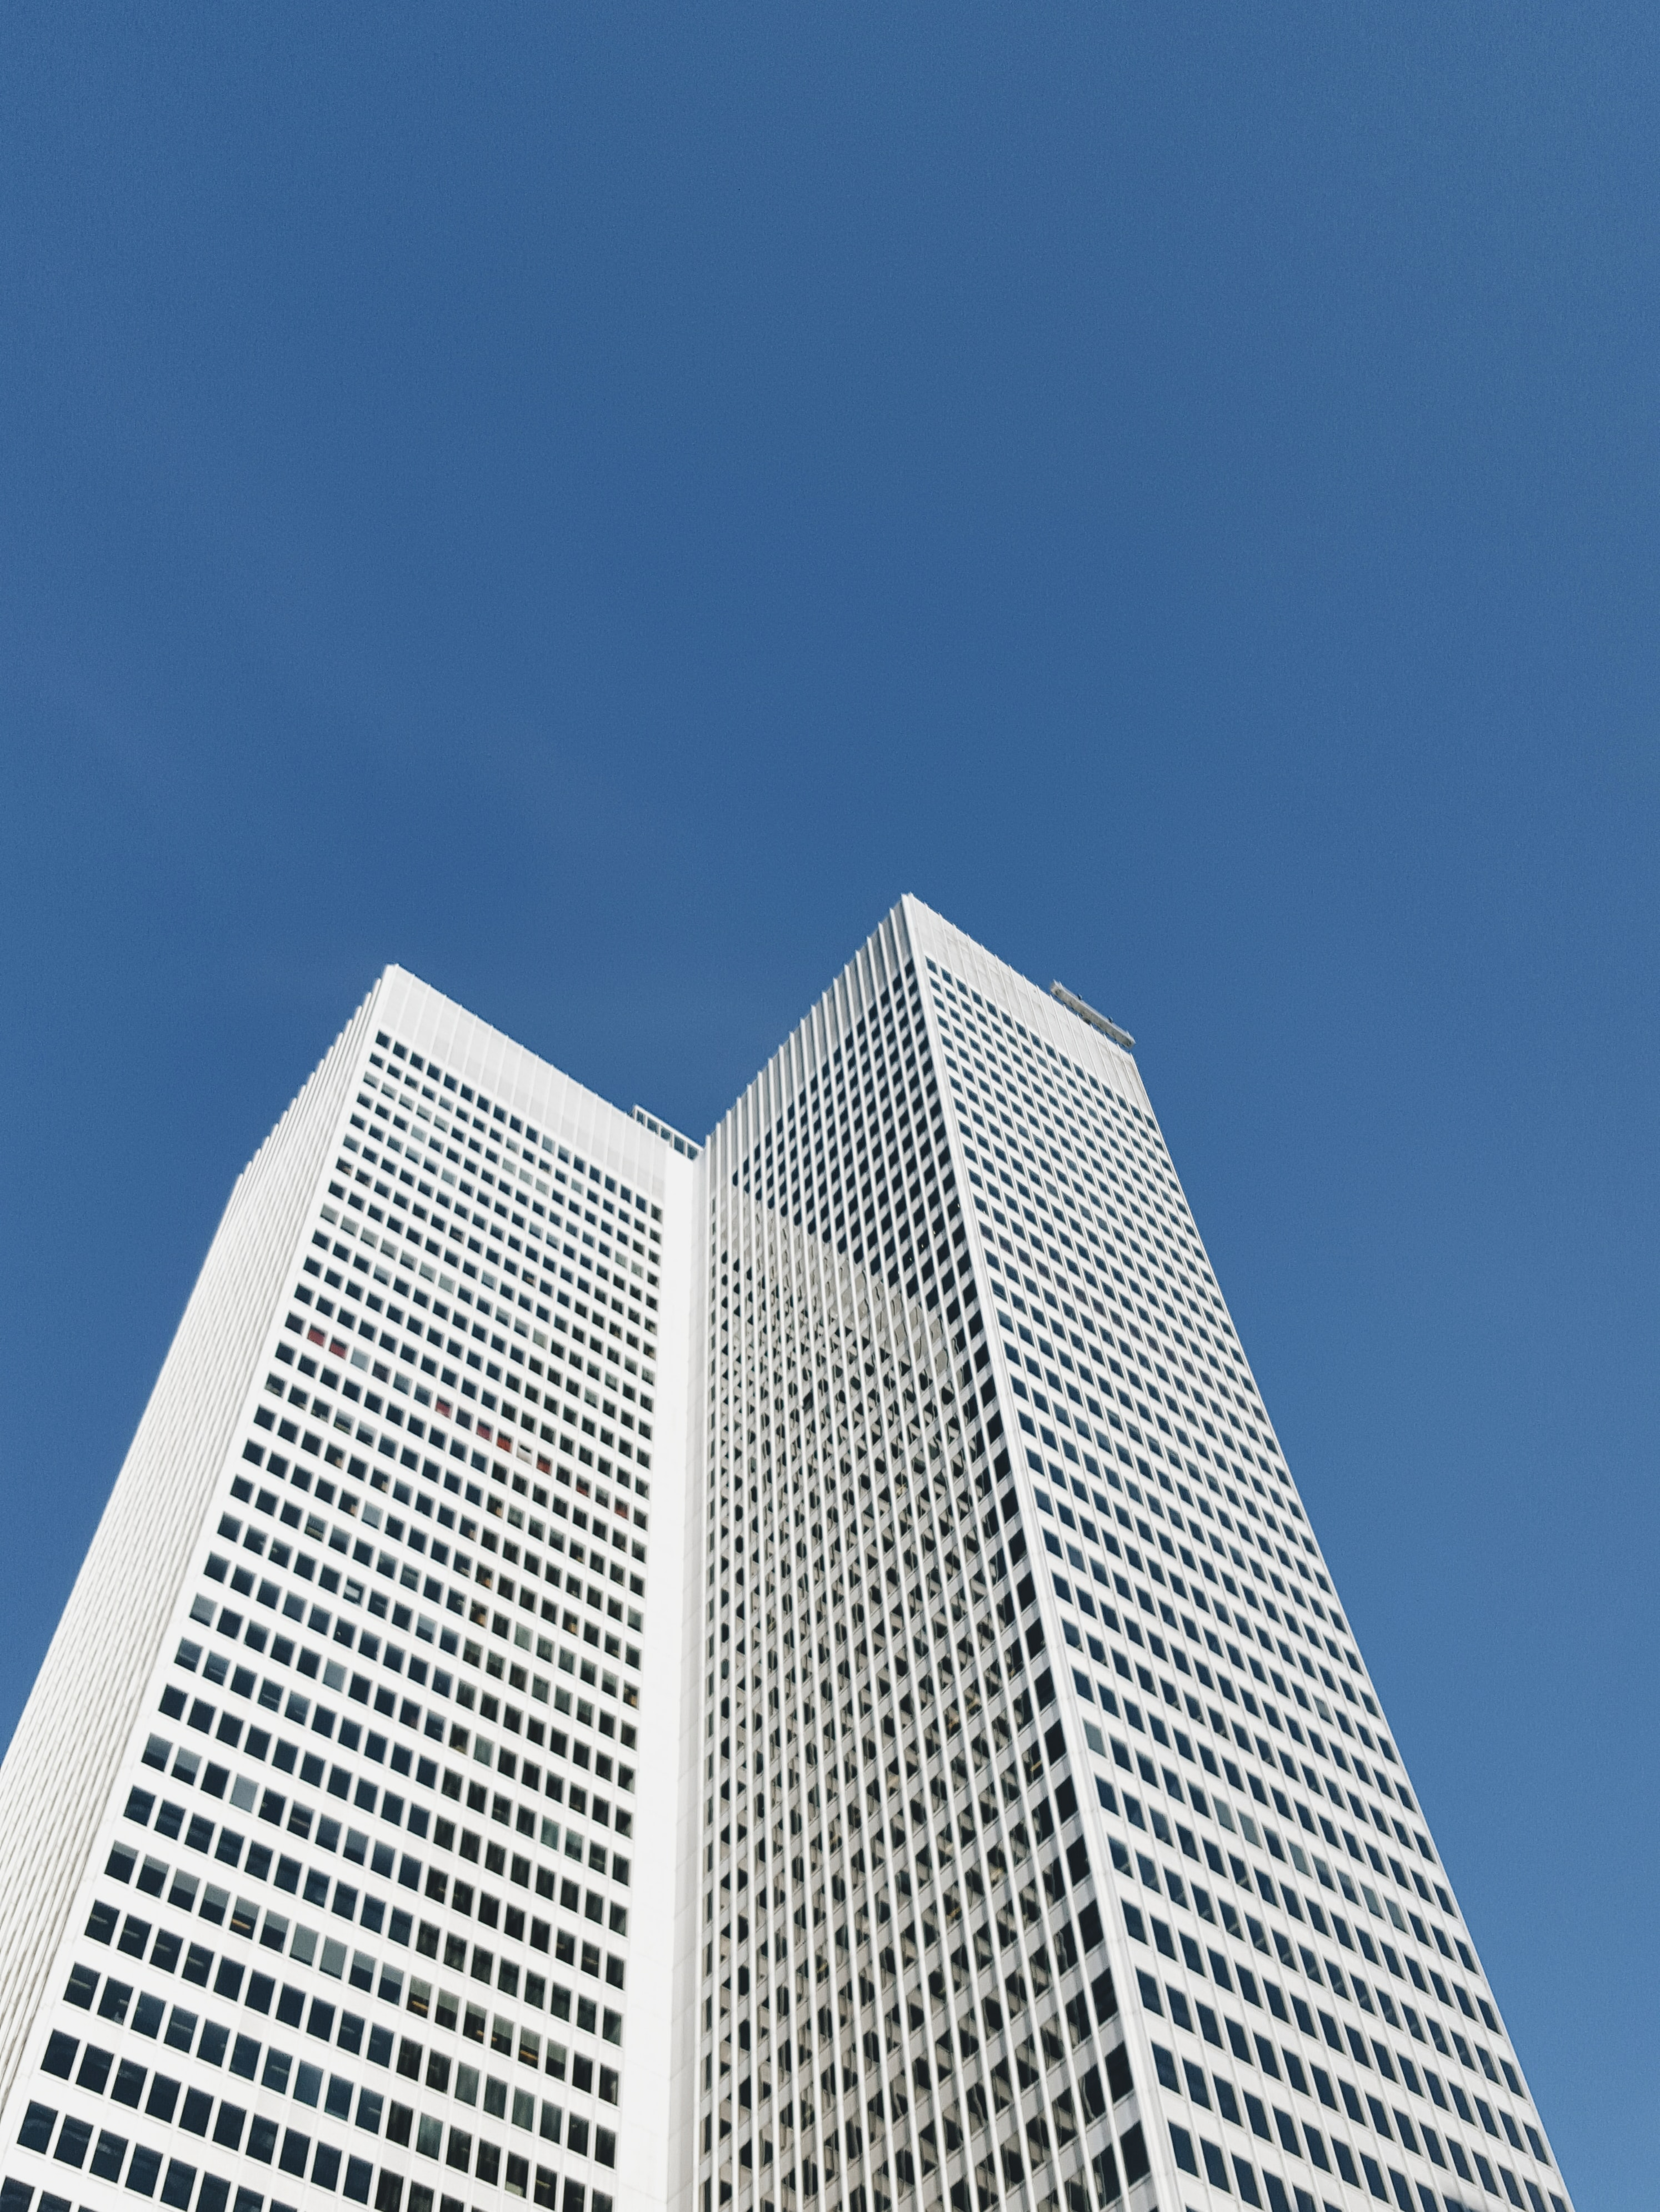 A white high-rise in Montreal under a blue sky